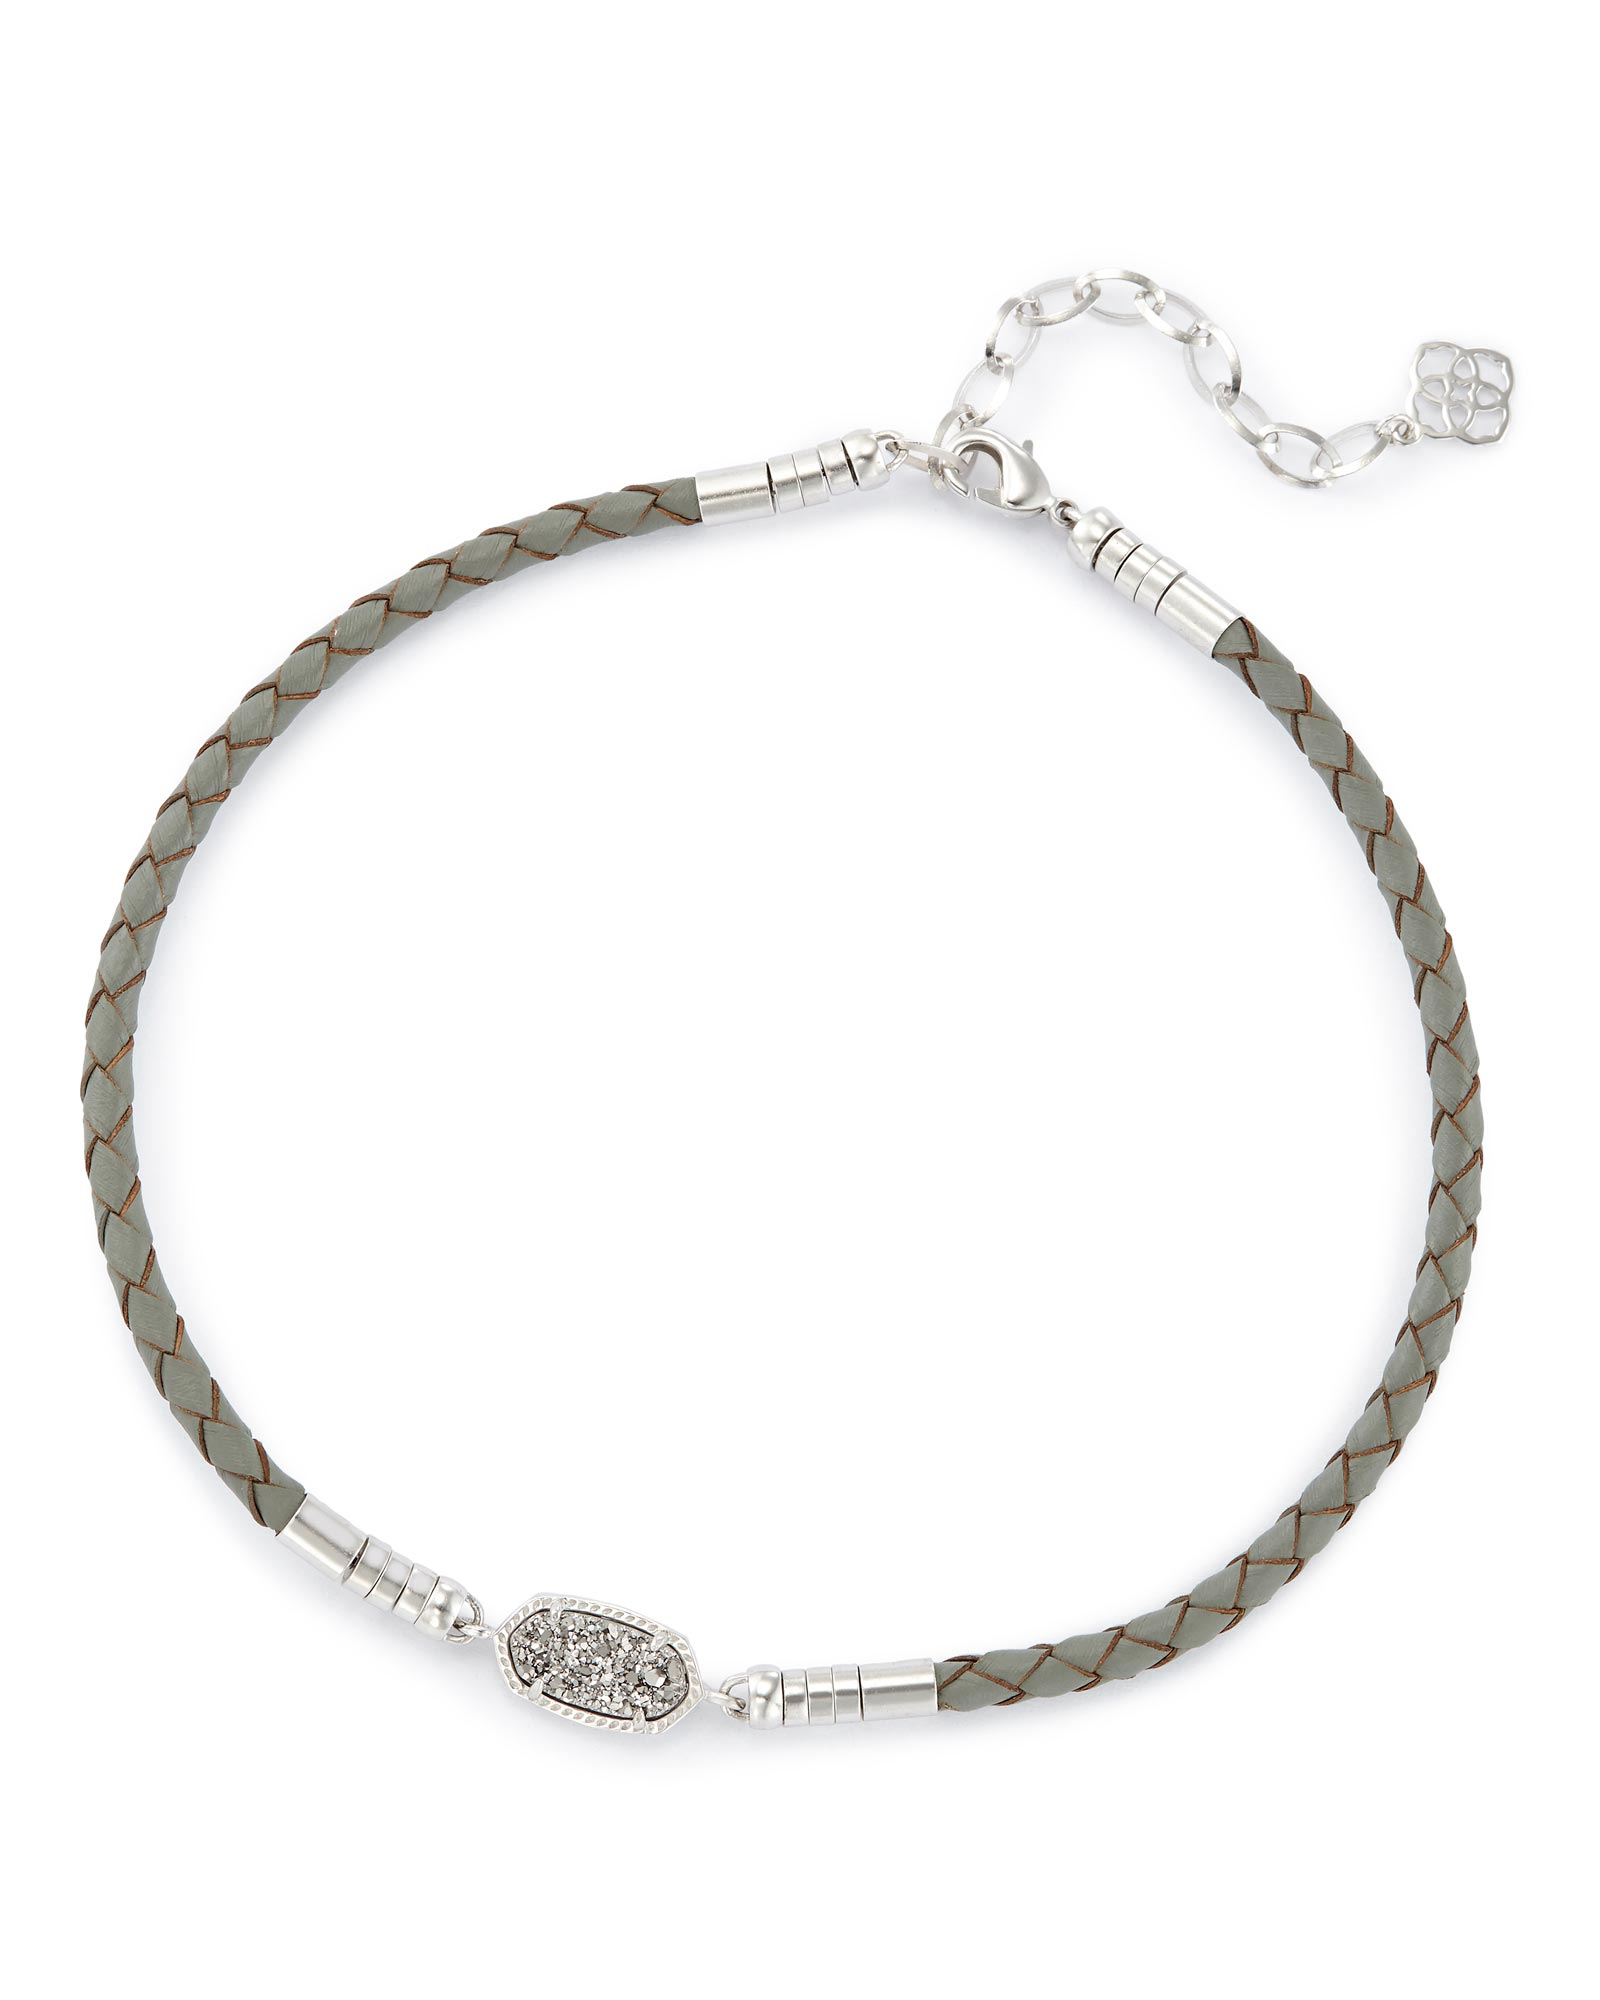 Cooper Gray Braided Leather Necklace In Silver